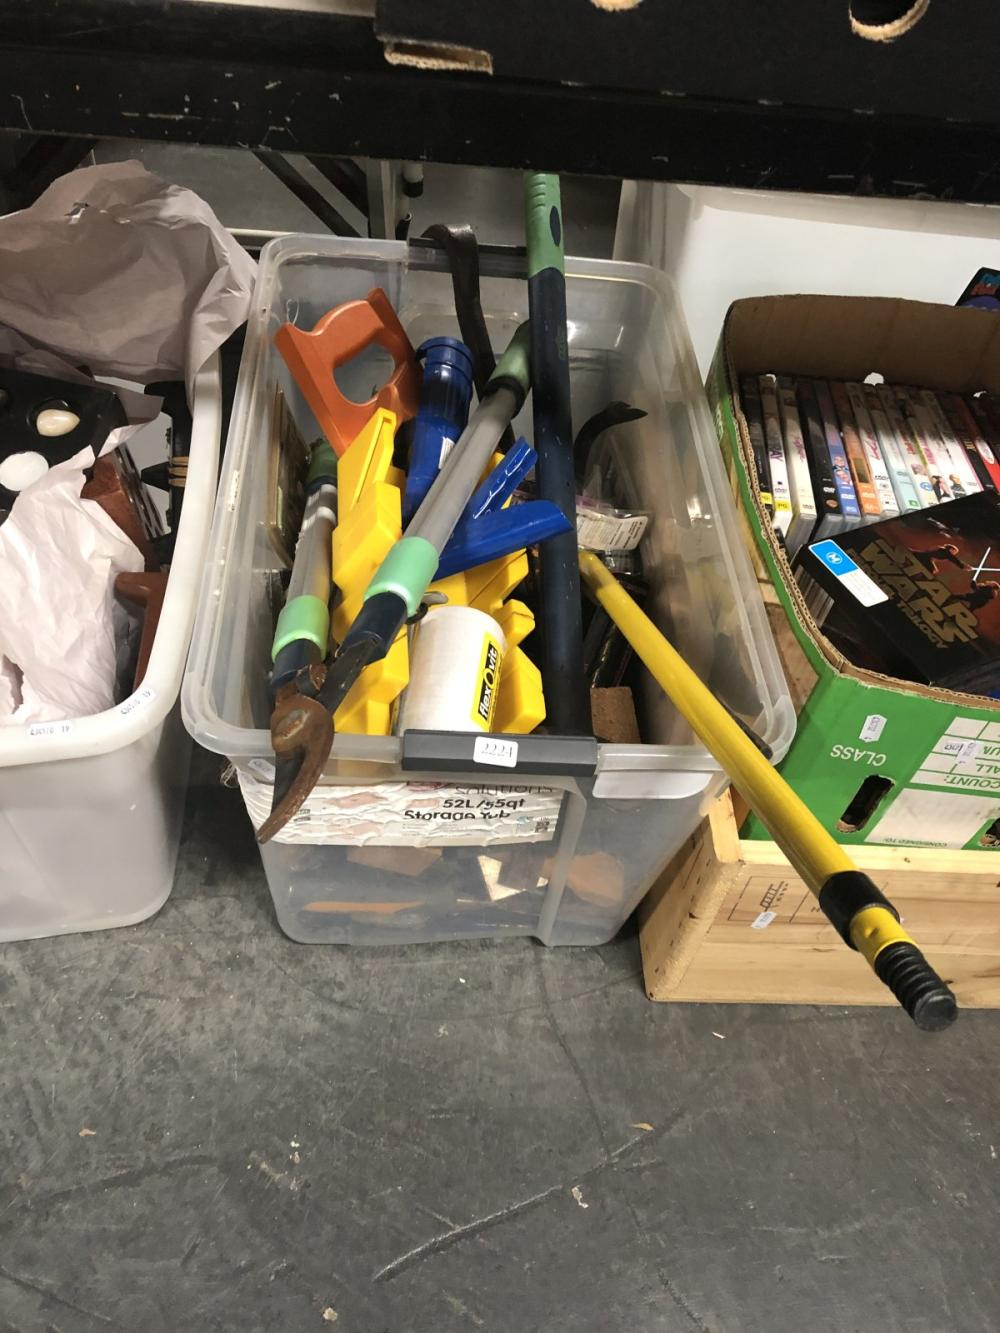 Tub Of Tools & Other Sundries